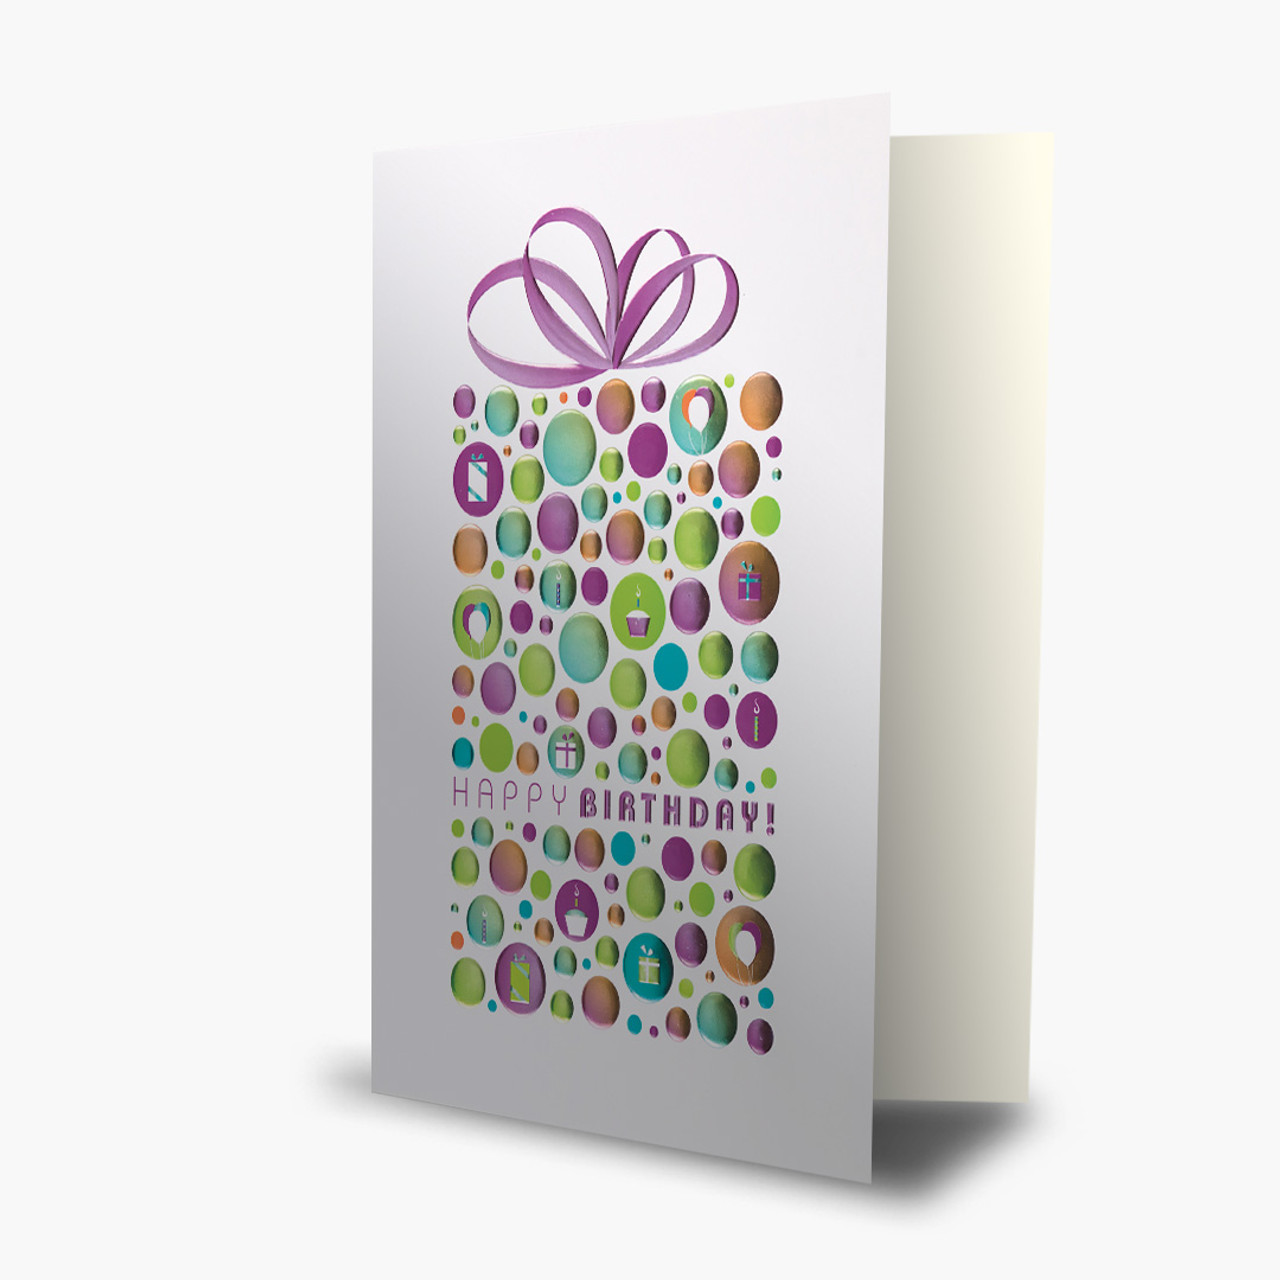 Polka Dot Present Birthday Card